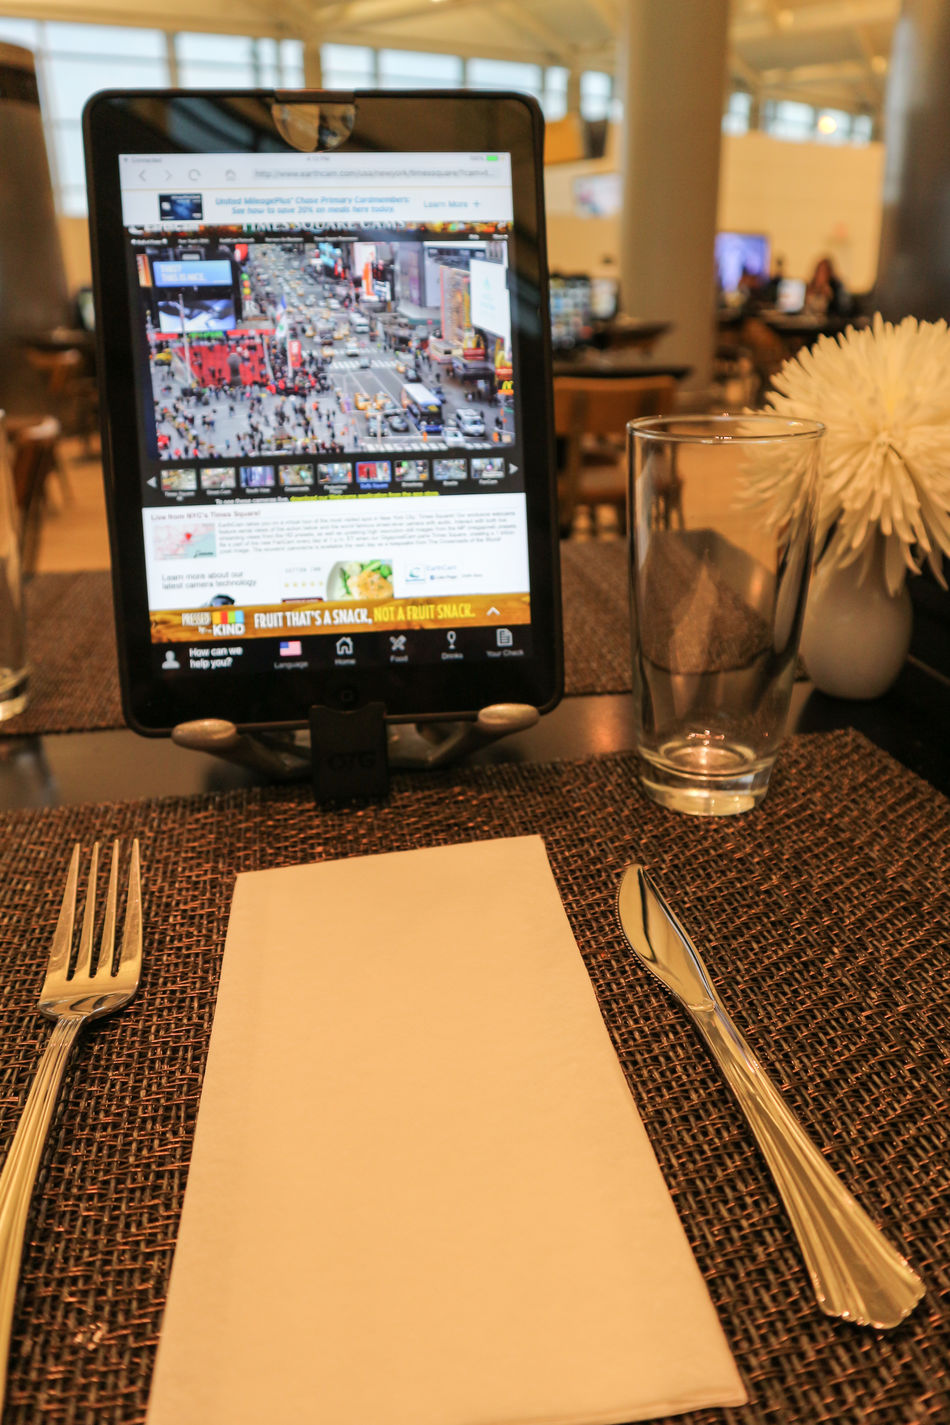 Technology Internet Wireless Technology Connection Business Communication Tablet Ordering Food Modern Communication Dining Dining Table